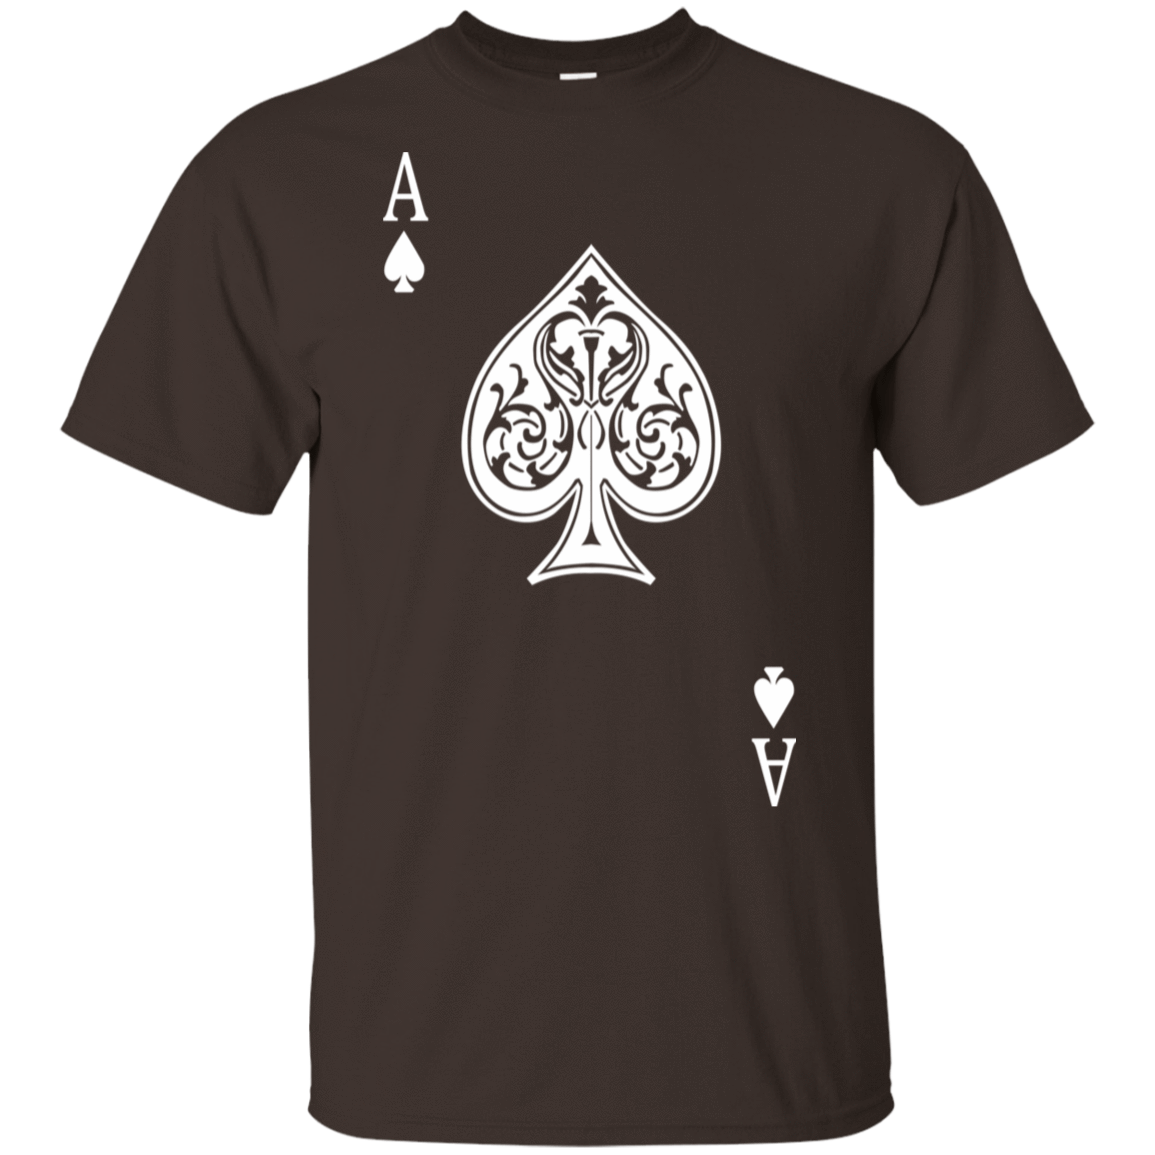 Ace of Spades 22-2283-72744325-12087 - Tee Ript